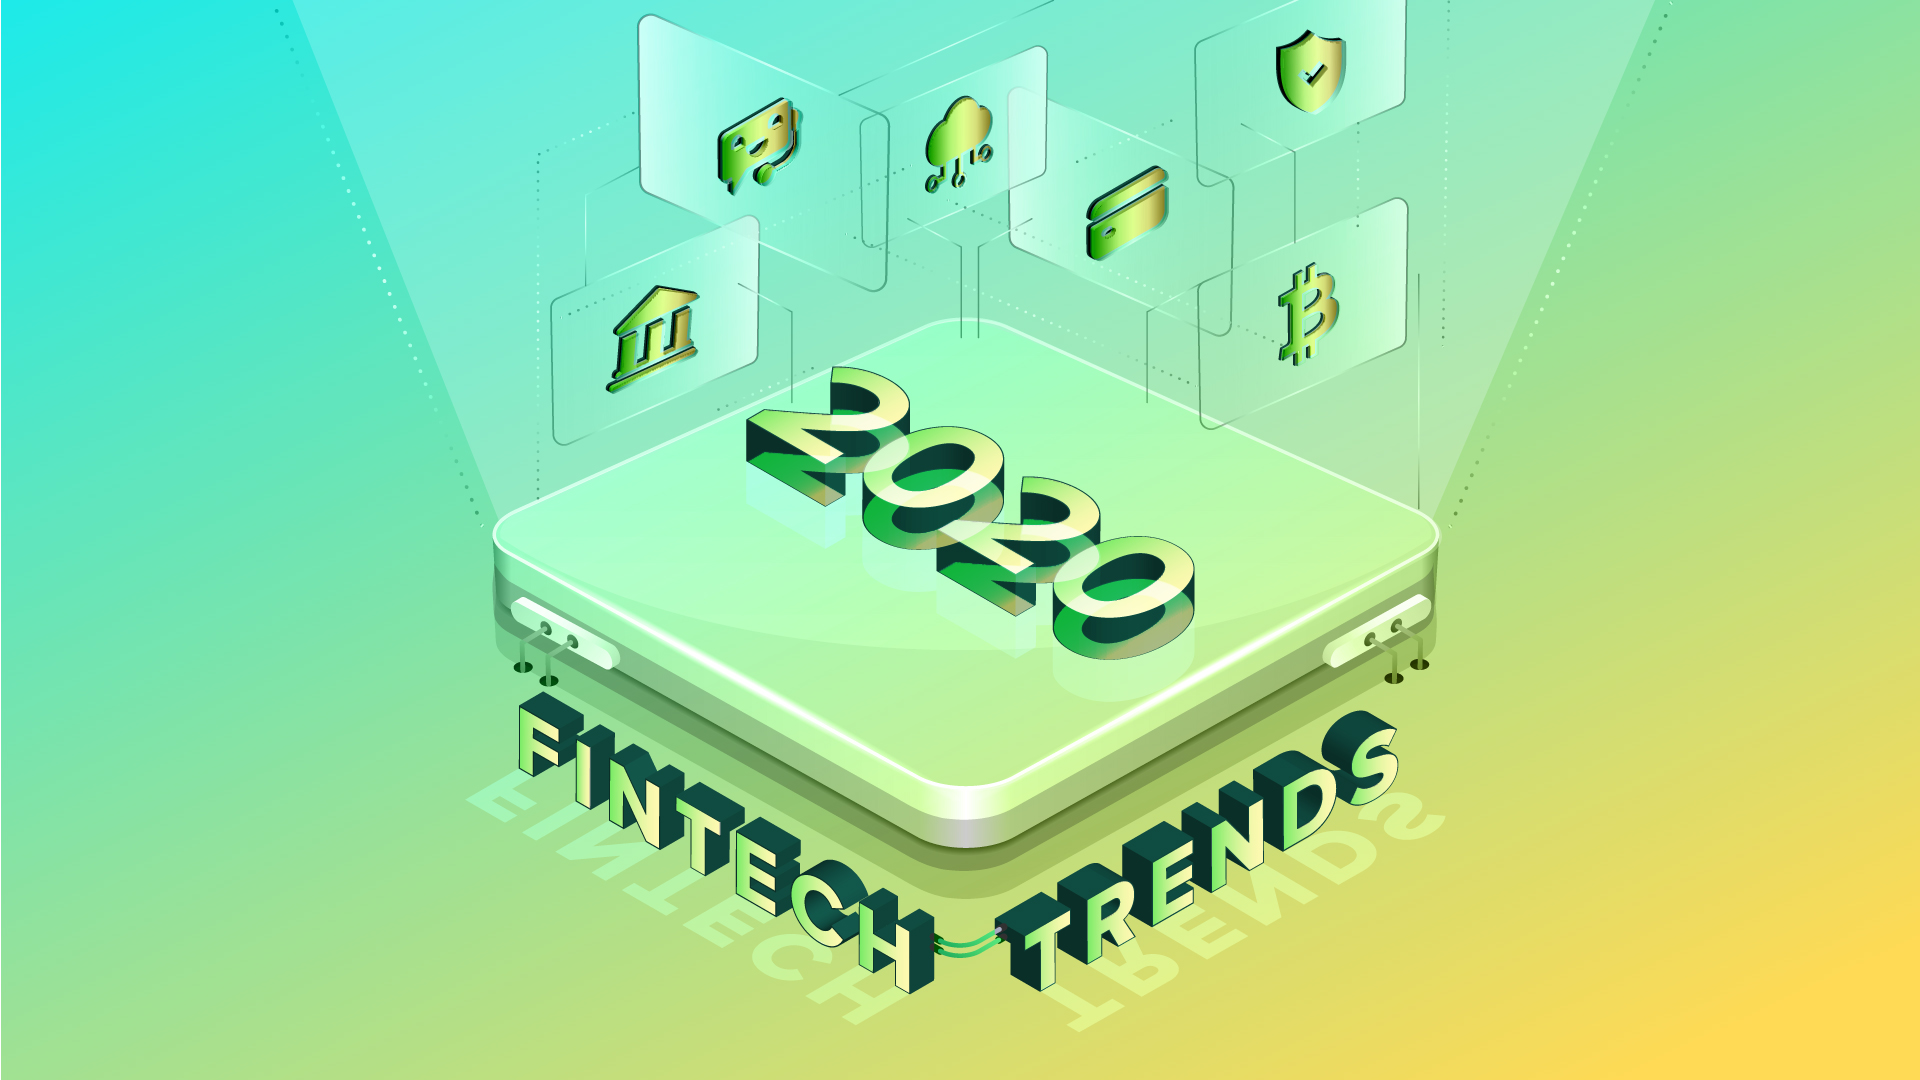 Fintech Trends 2020.Fintech Trends To Dominate In 2020 And Beyond